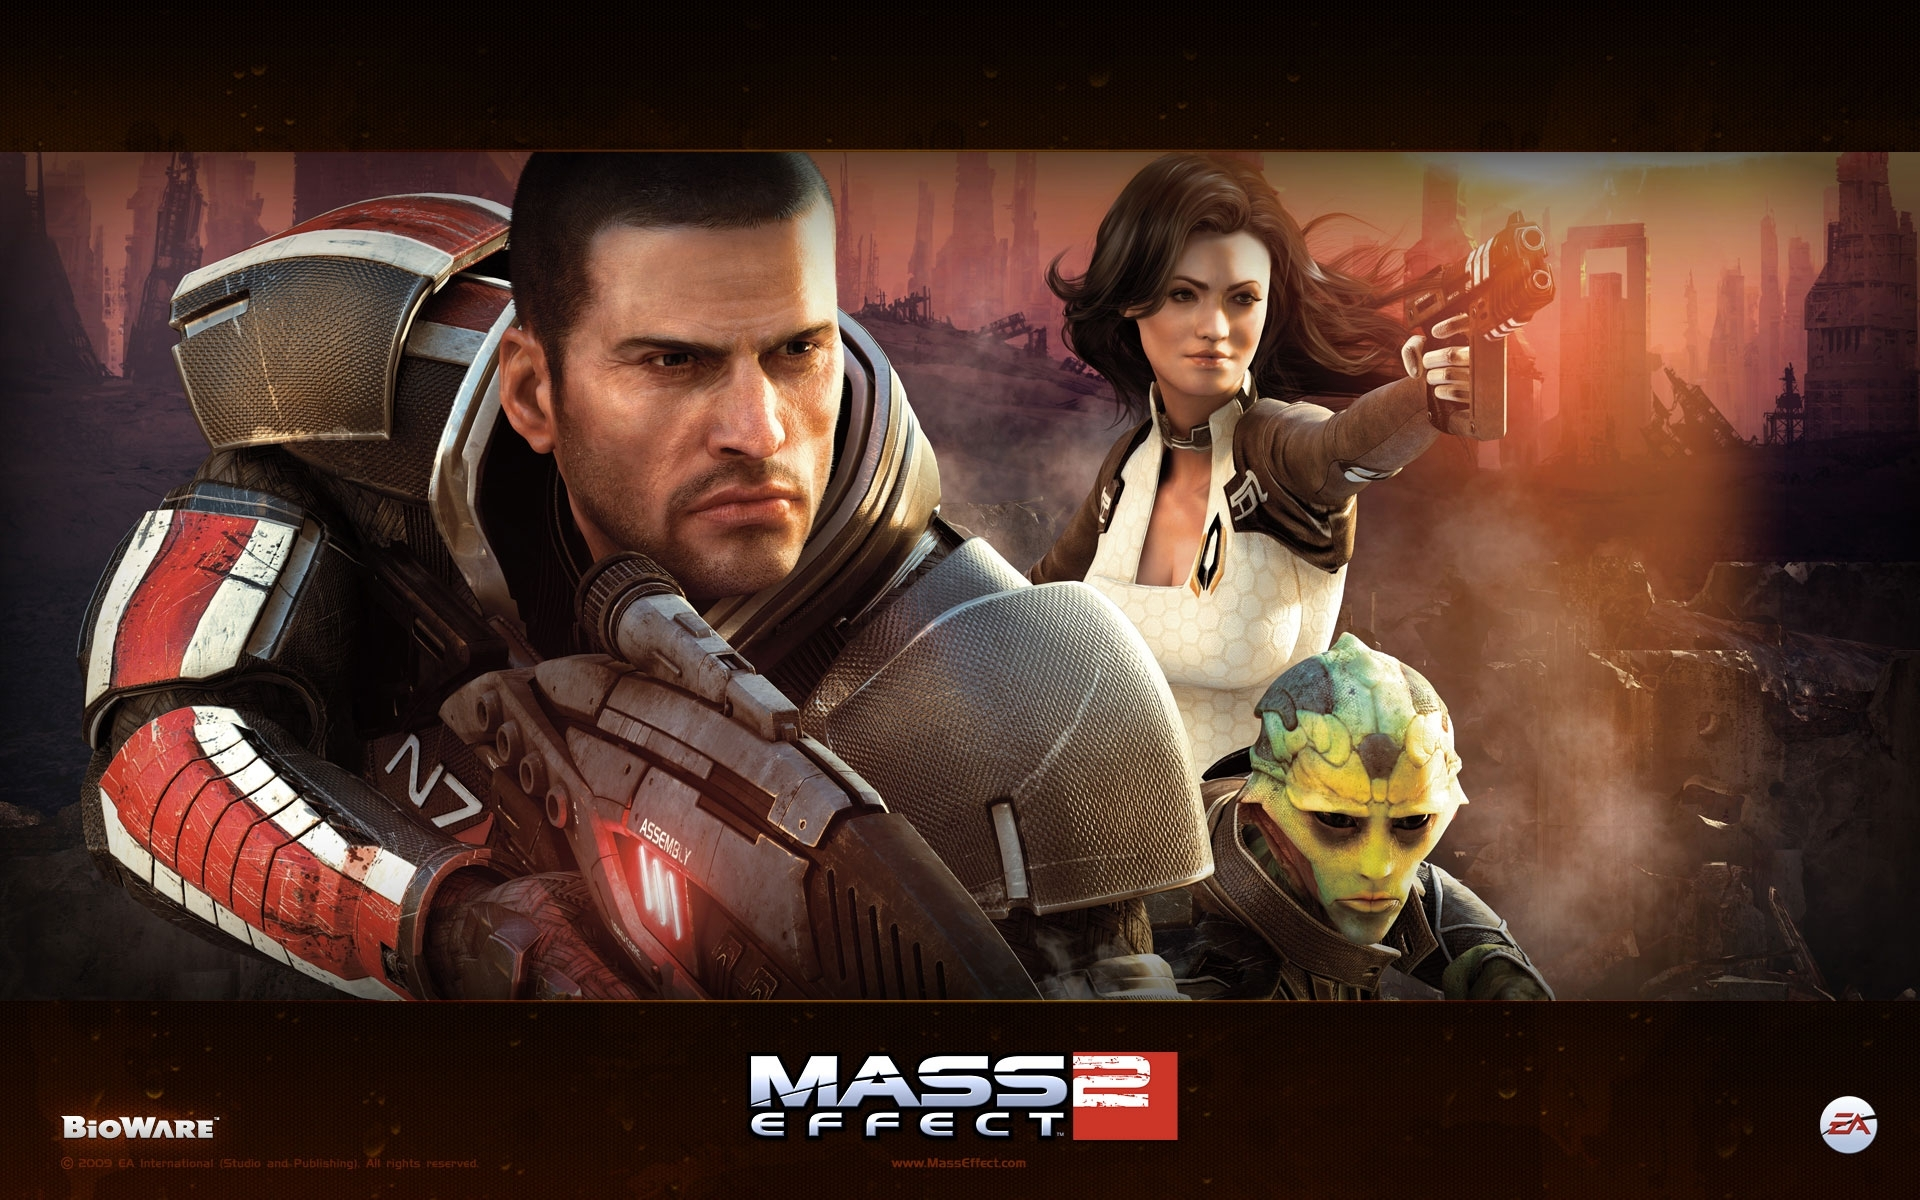 mass effect 2 wallpapers | hd wallpapers | id #7008